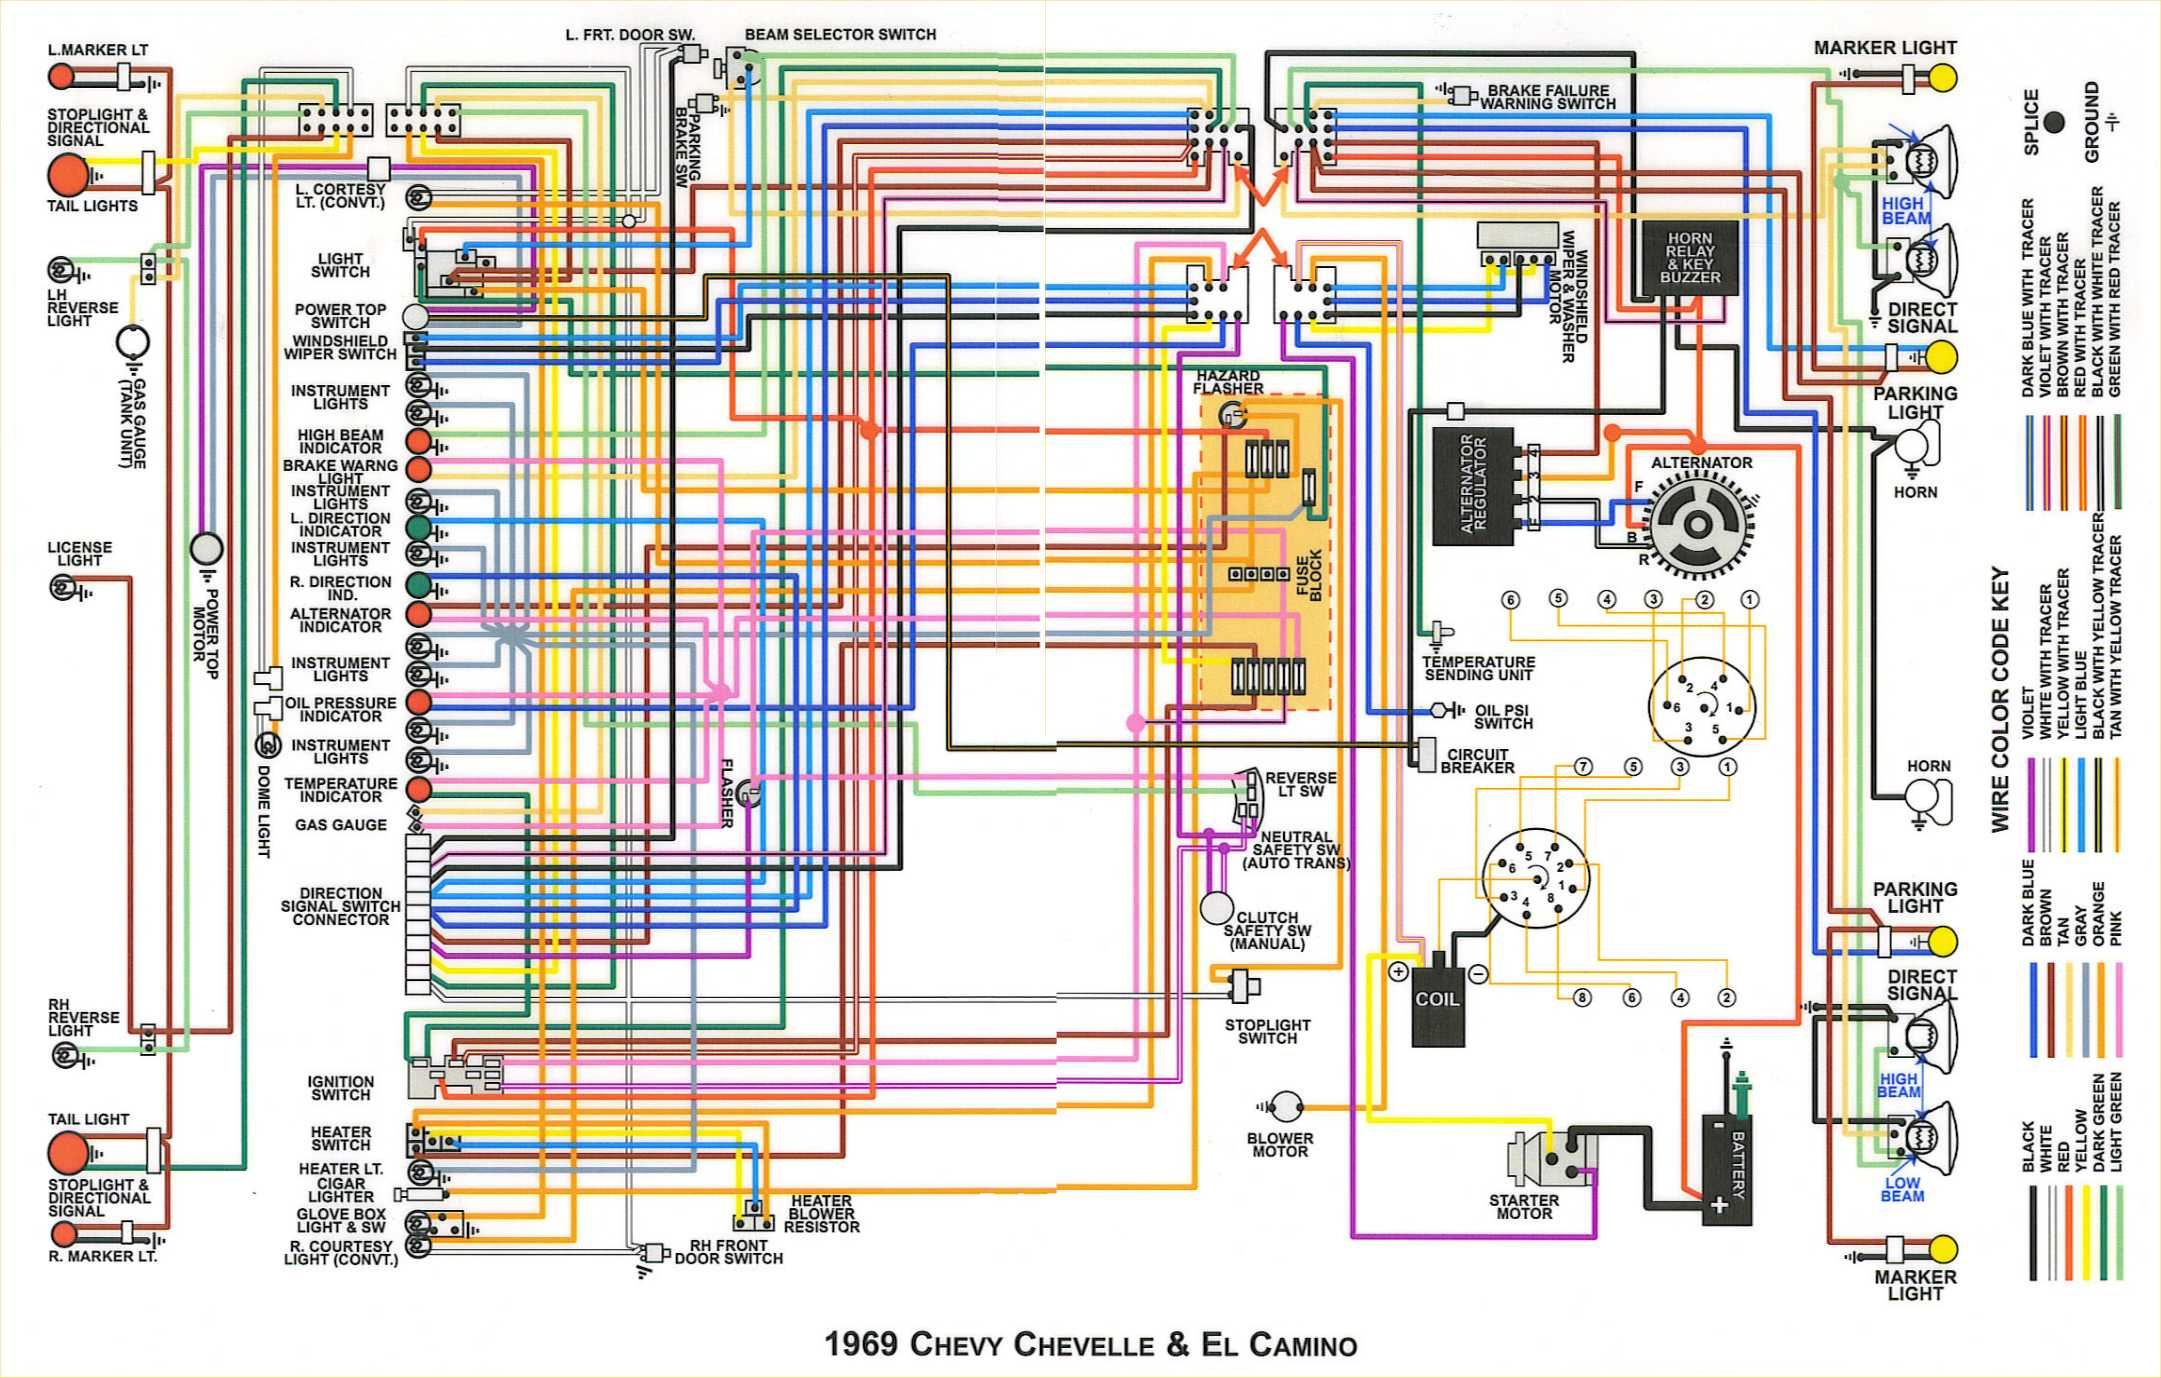 chevelle wiring diagram wiring diagrams online windshield wiper wiring 1966 chevelle hot rod forum hotrodders